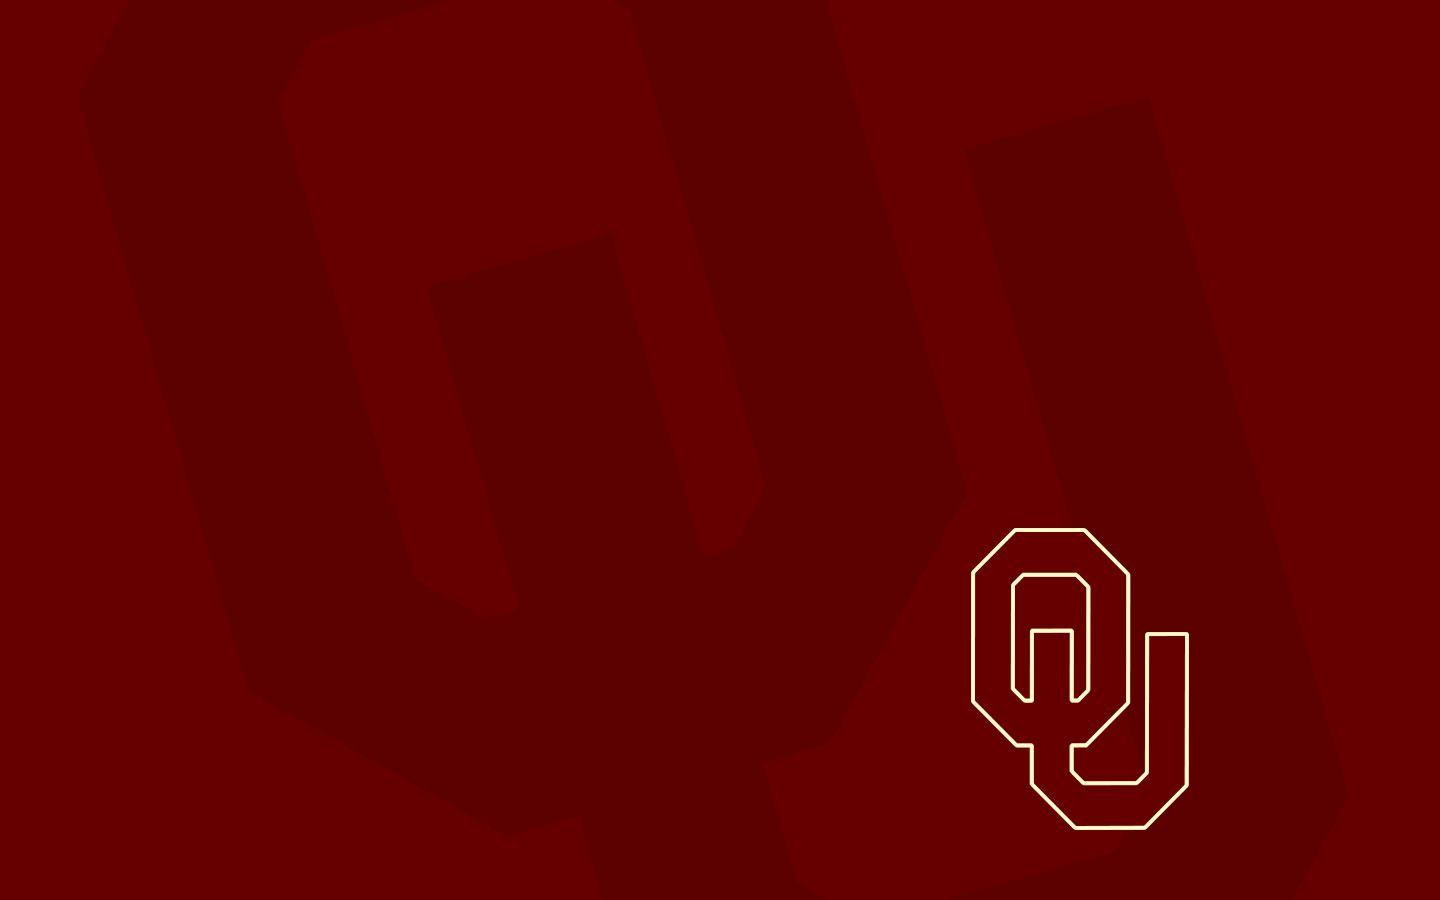 ou sooners wallpaper for laptop - photo #1